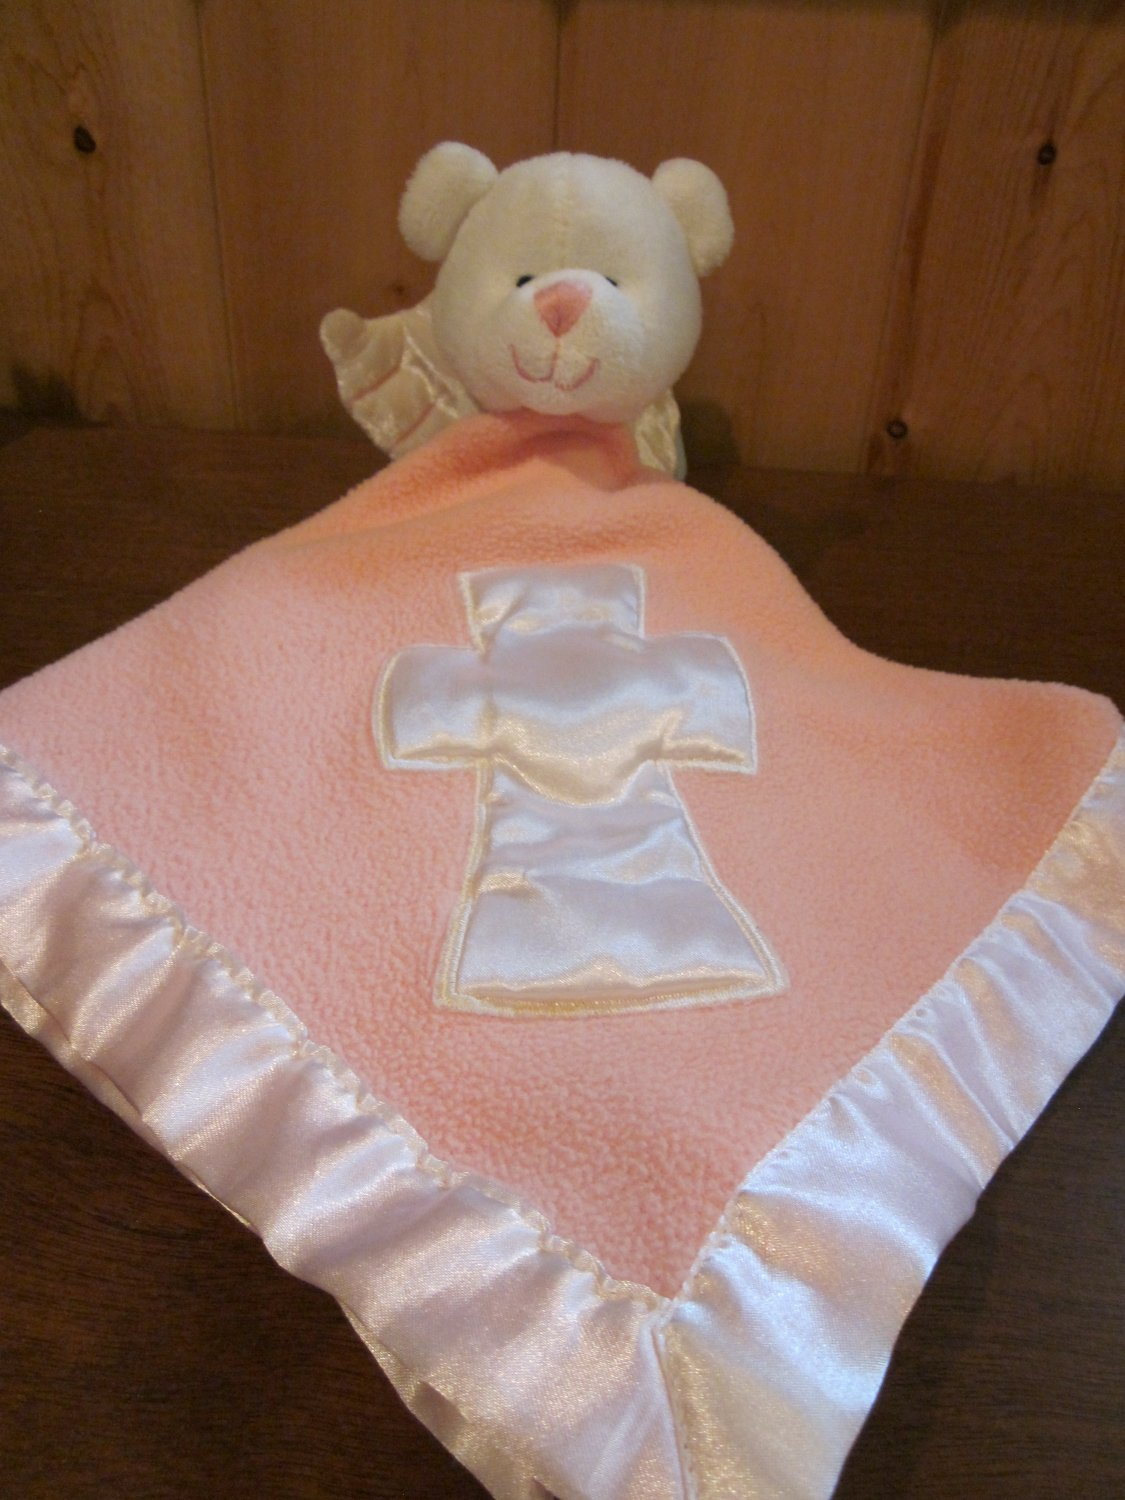 baby boom pink security blanket white bear angel musical jesus loves me babyboom. Black Bedroom Furniture Sets. Home Design Ideas